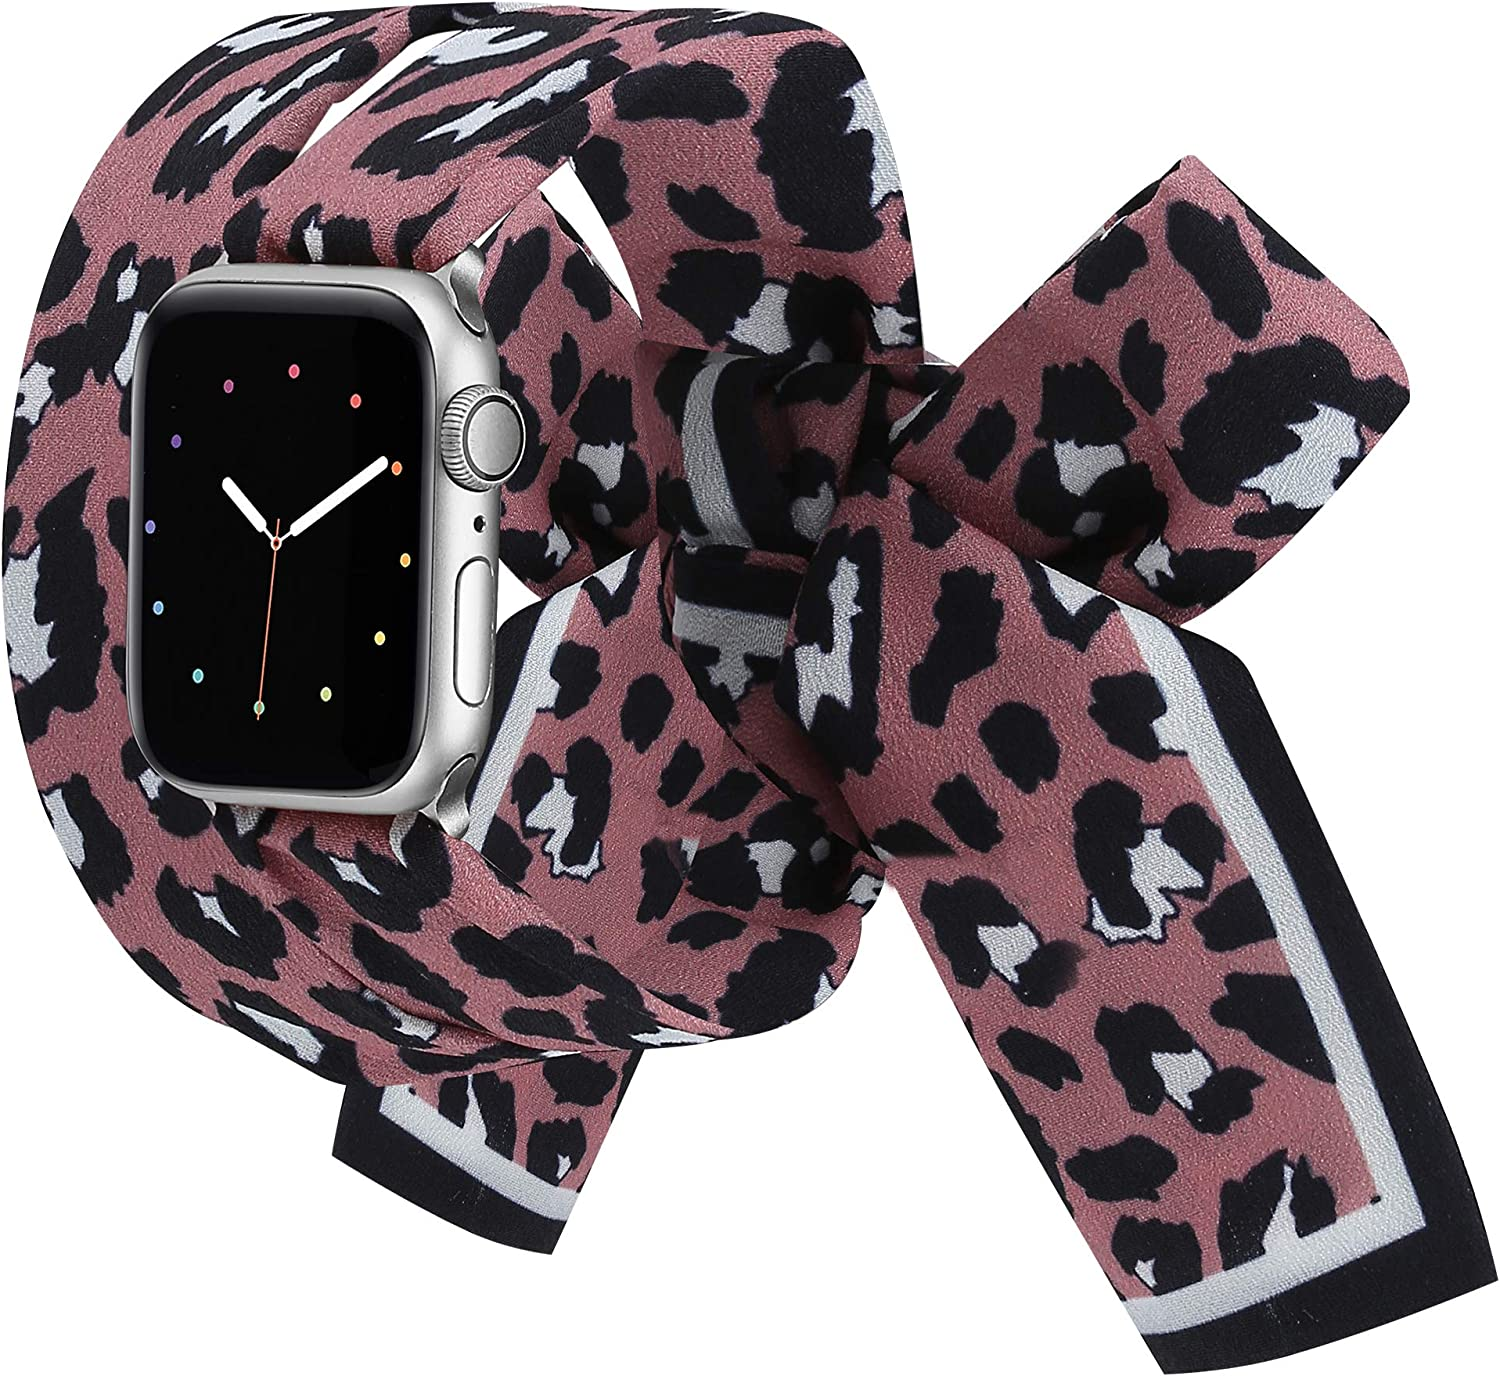 Wearlizer Compatible with Apple Watch Bands Scarf 38mm 40mm for iWatch Band Women Girls Fashion Scarf Replacement Wrist Strap for Apple Watch SE Series 6 5 4 3 2 1 - Pink Leopard